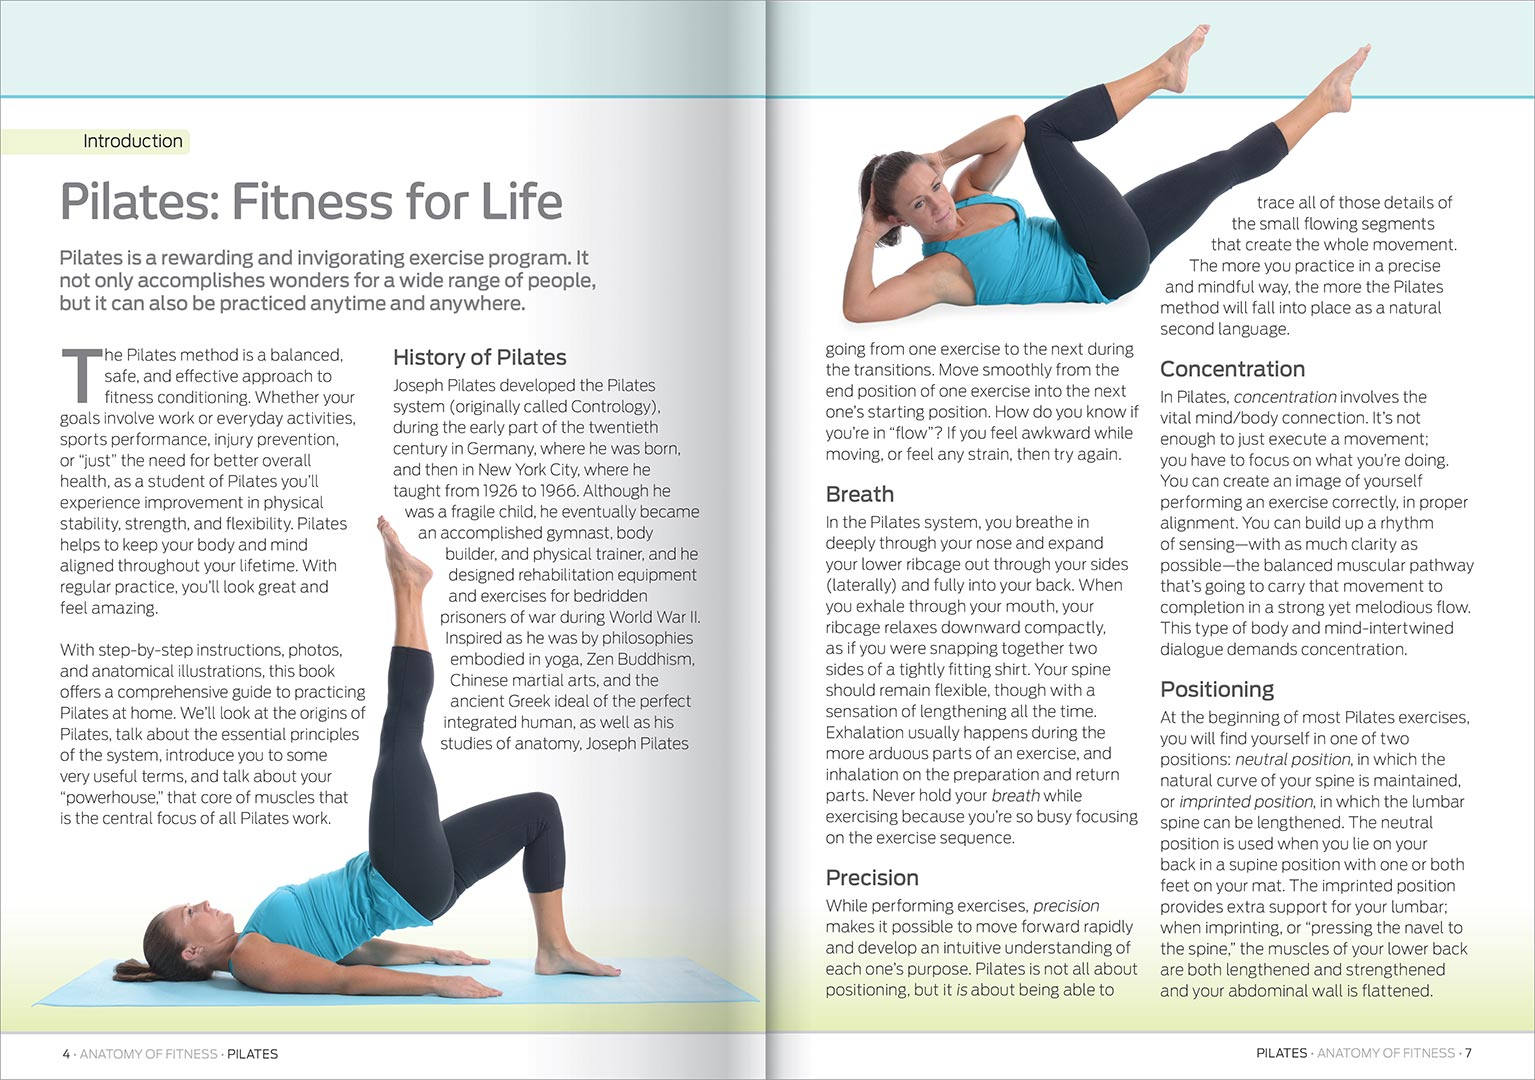 Anatomy of Fitness: Complete Pilates Workout Kit - Reference ...